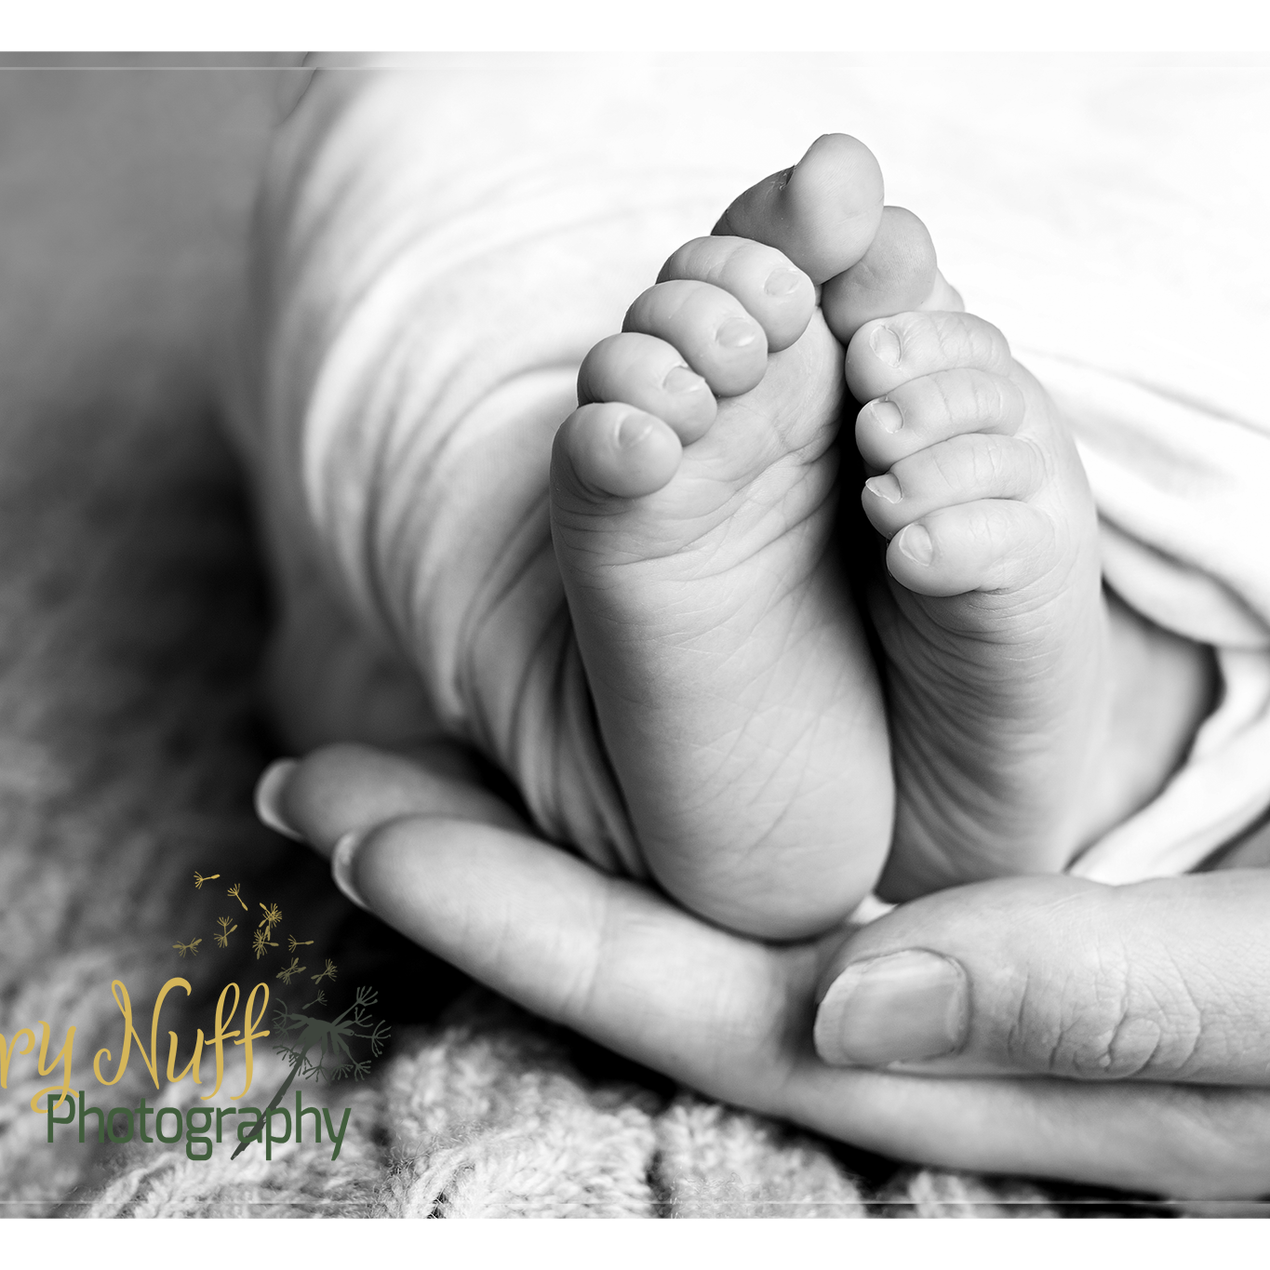 black and white baby feet in Mothers hand by Fairy Nuff Photography, Nottingham